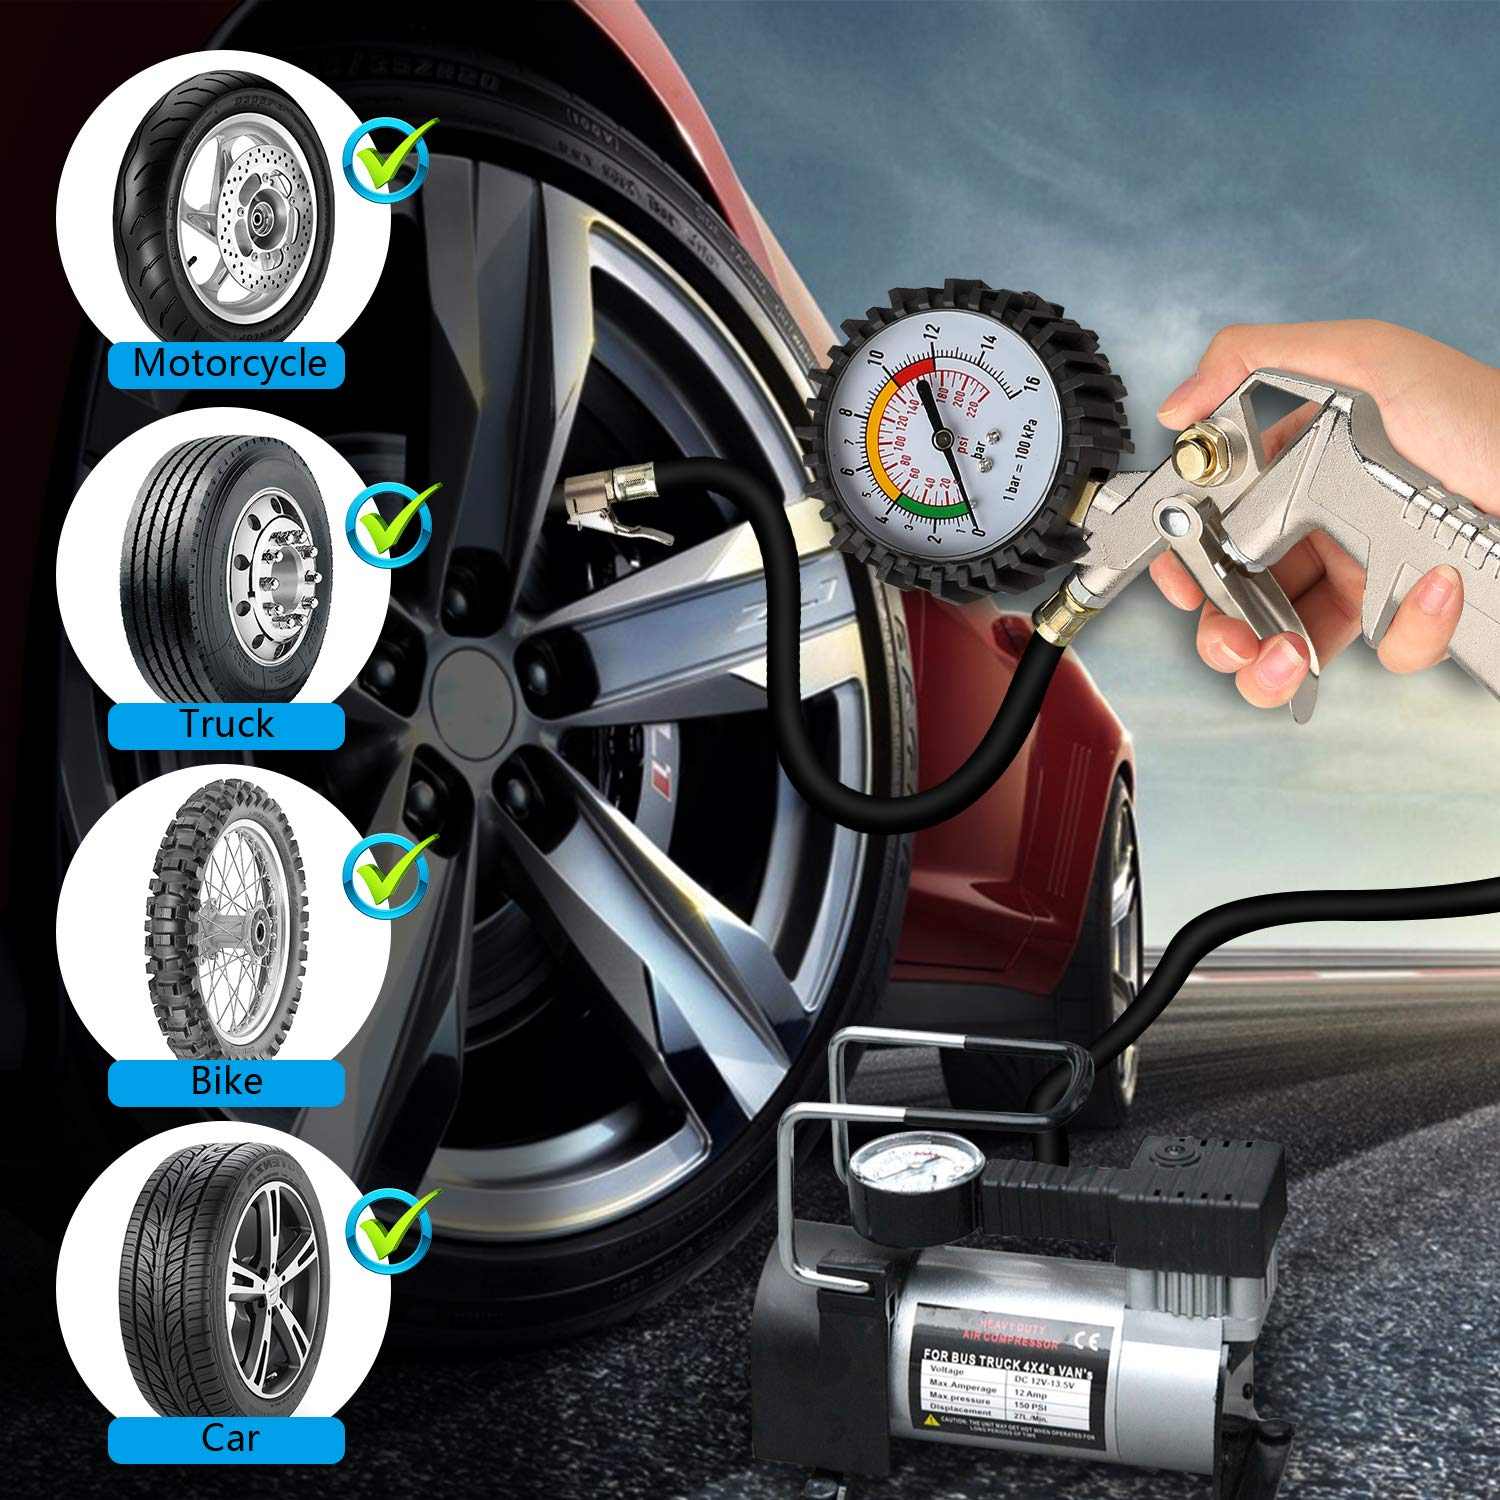 Automotive Air Tyre Gauge Heavy Duty Car/& Motorycle/& Bicycles with Presta and Schrader Valve Linkstyle Tyre Inflator with Pressure Gauge 220 PSI Tire Pressure Gauge